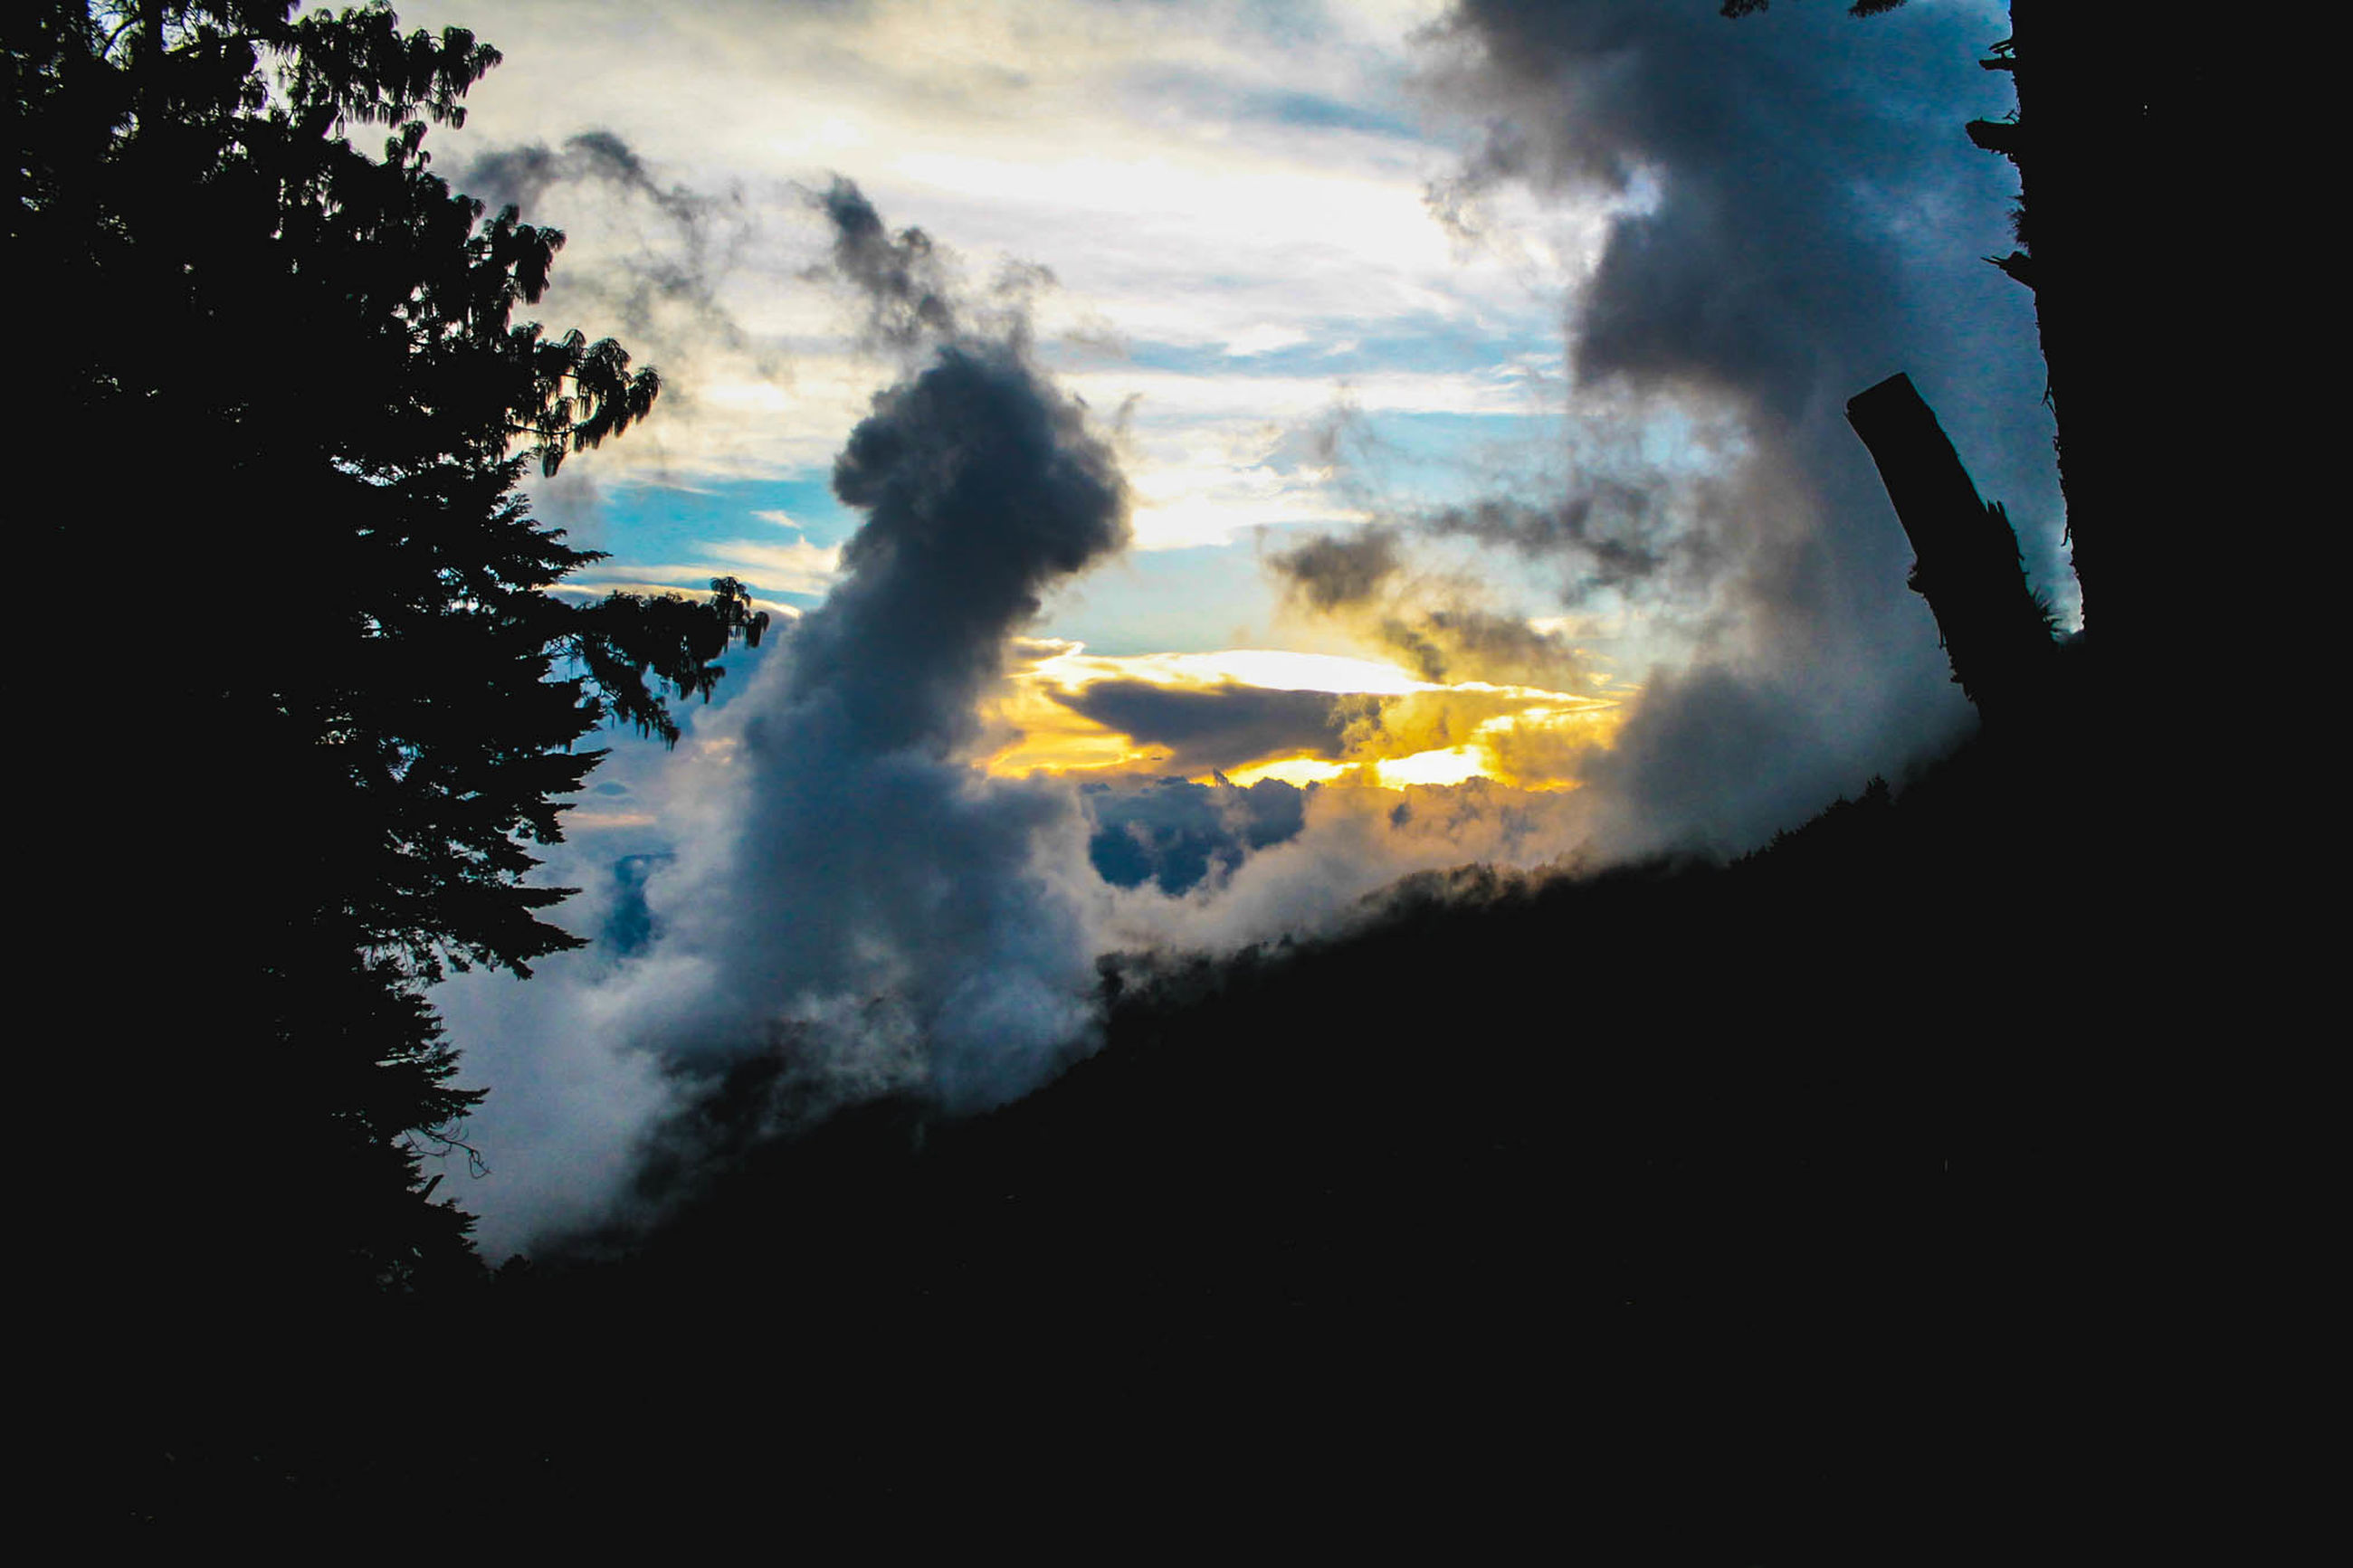 cloud - sky, sky, sunset, nature, no people, smoke - physical structure, beauty in nature, tree, outdoors, day